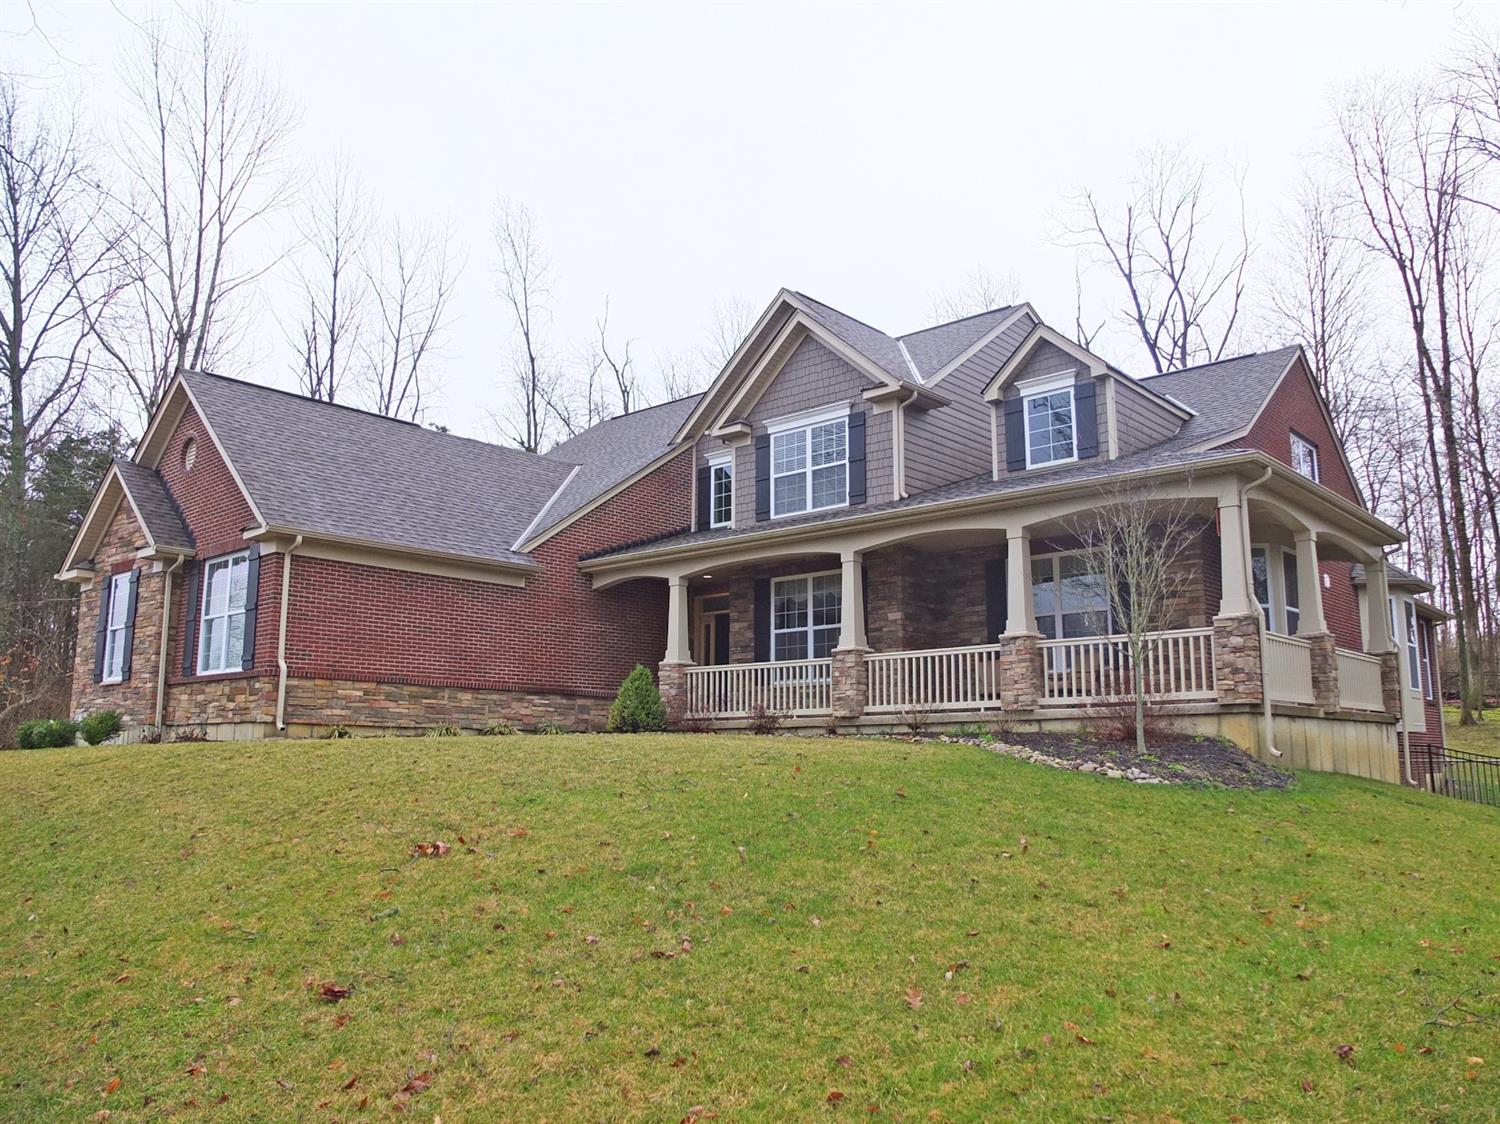 6321 Trillium Dr Wayne Twp. (Warren Co.), OH